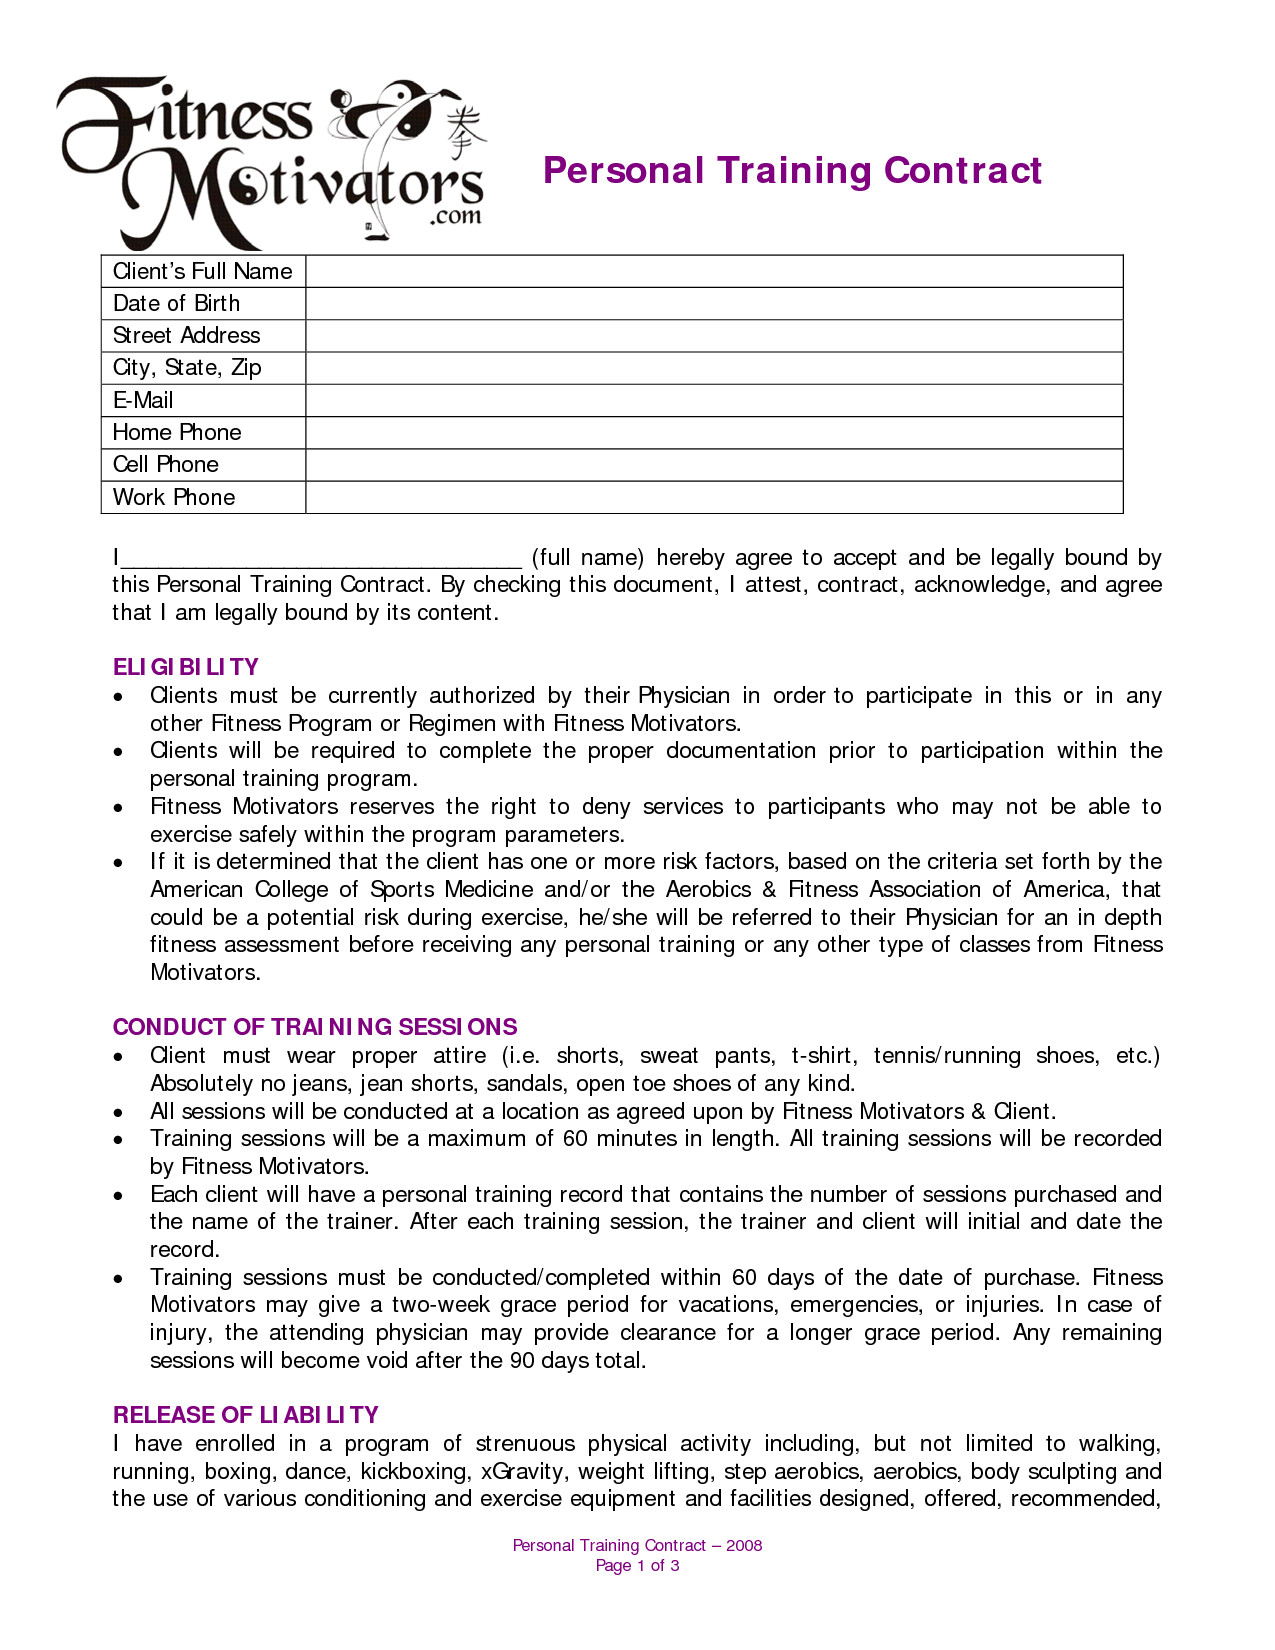 Personal Training Contracts Template Personal Training Agreement Free Printable Documents